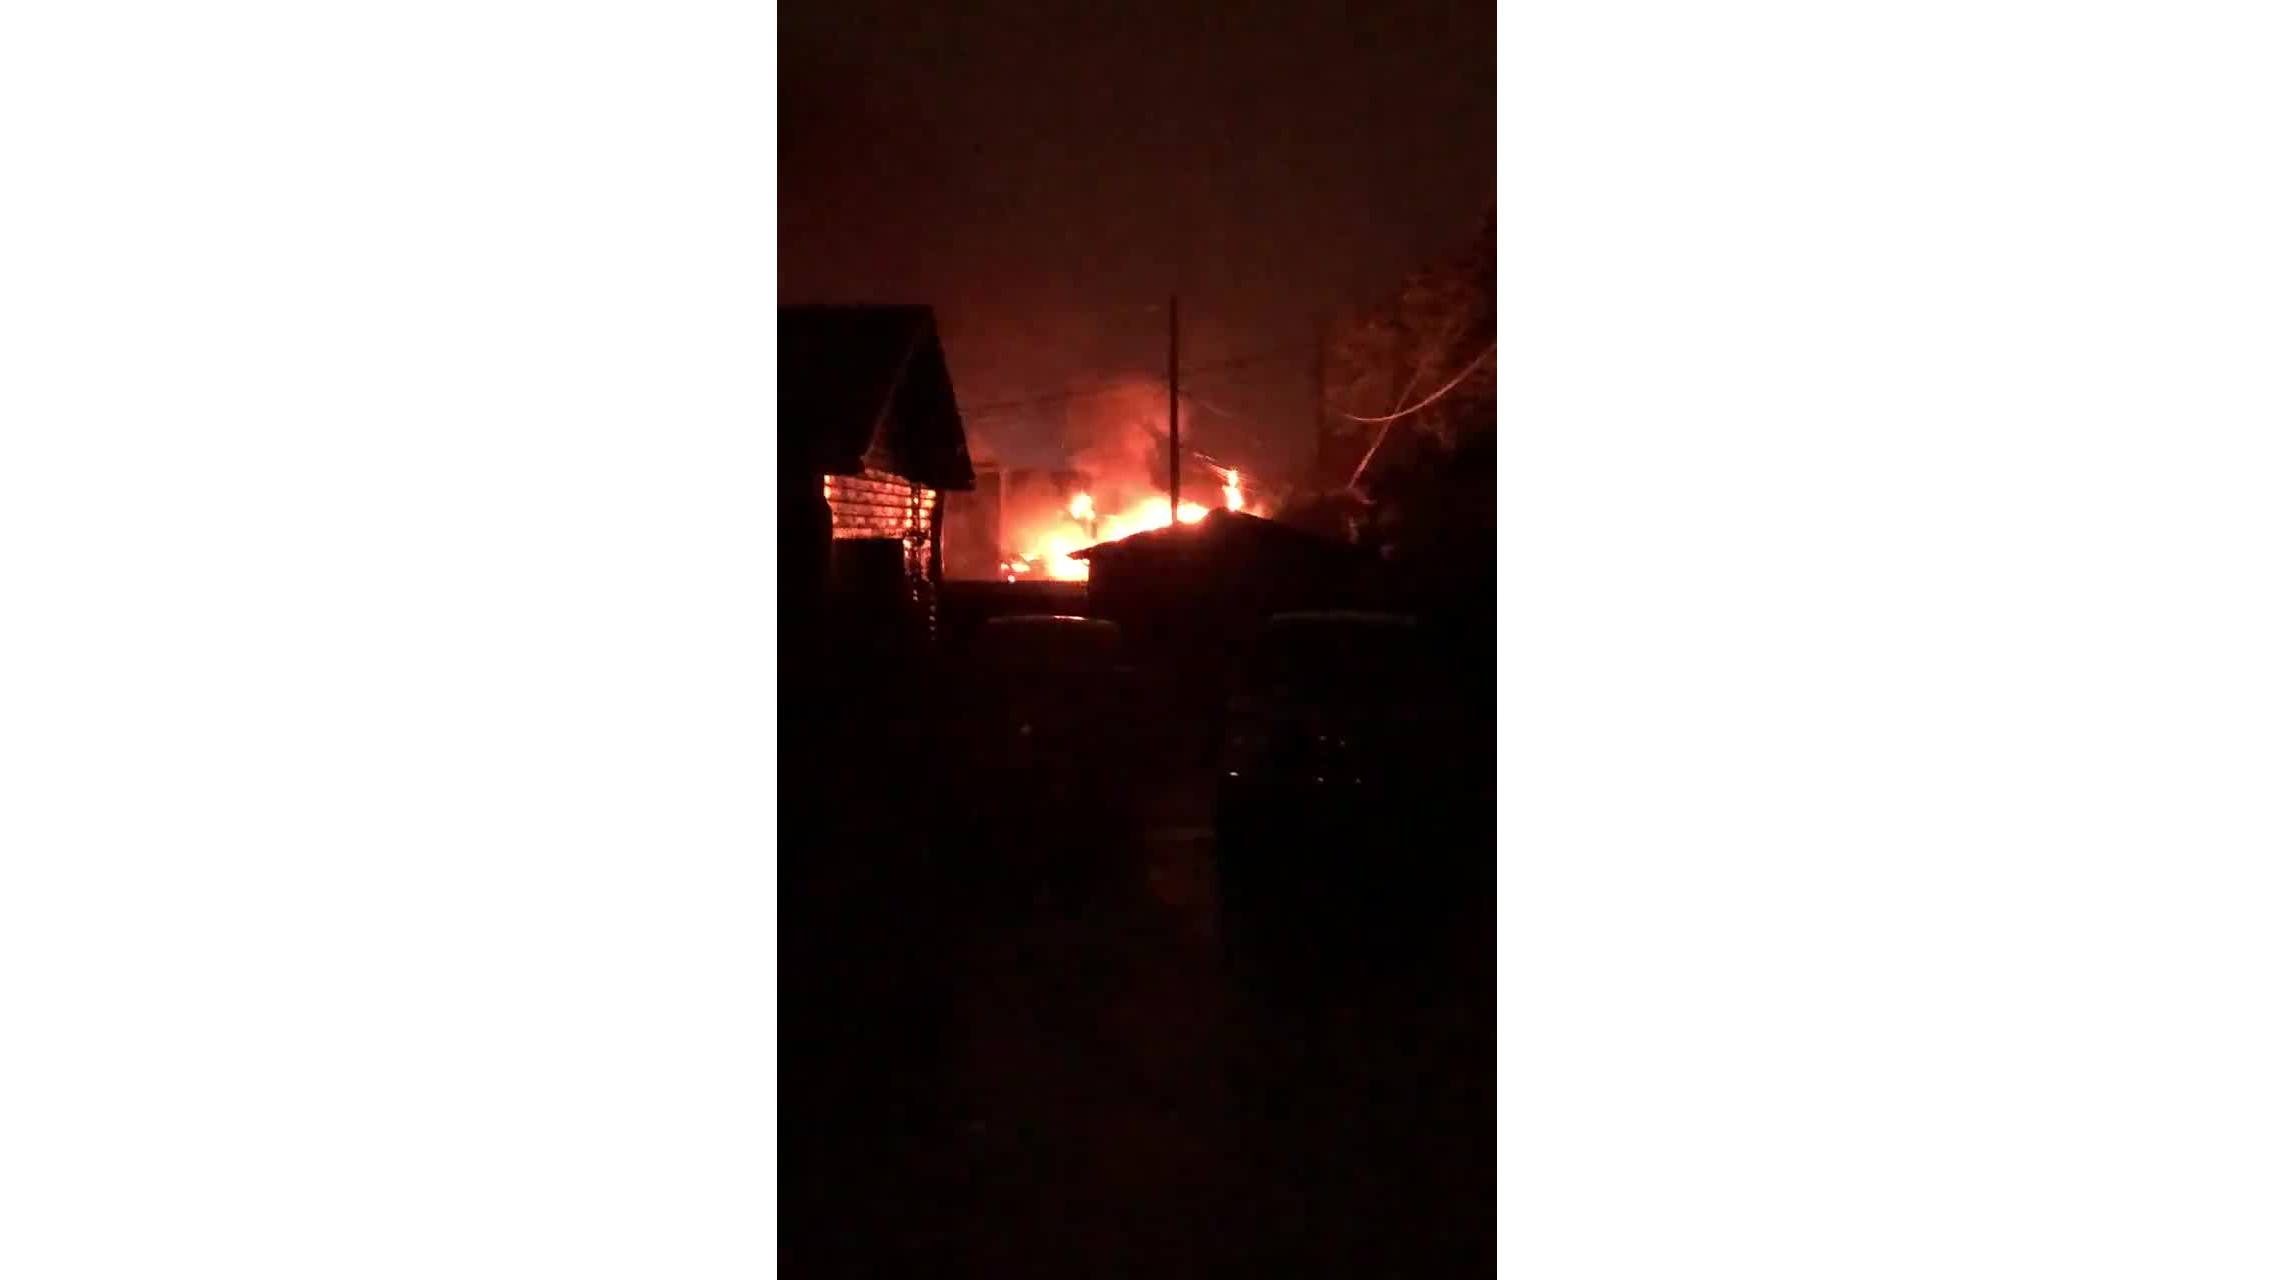 House_catches_fire_after_struck_by_light_0_20190620043806-118809318